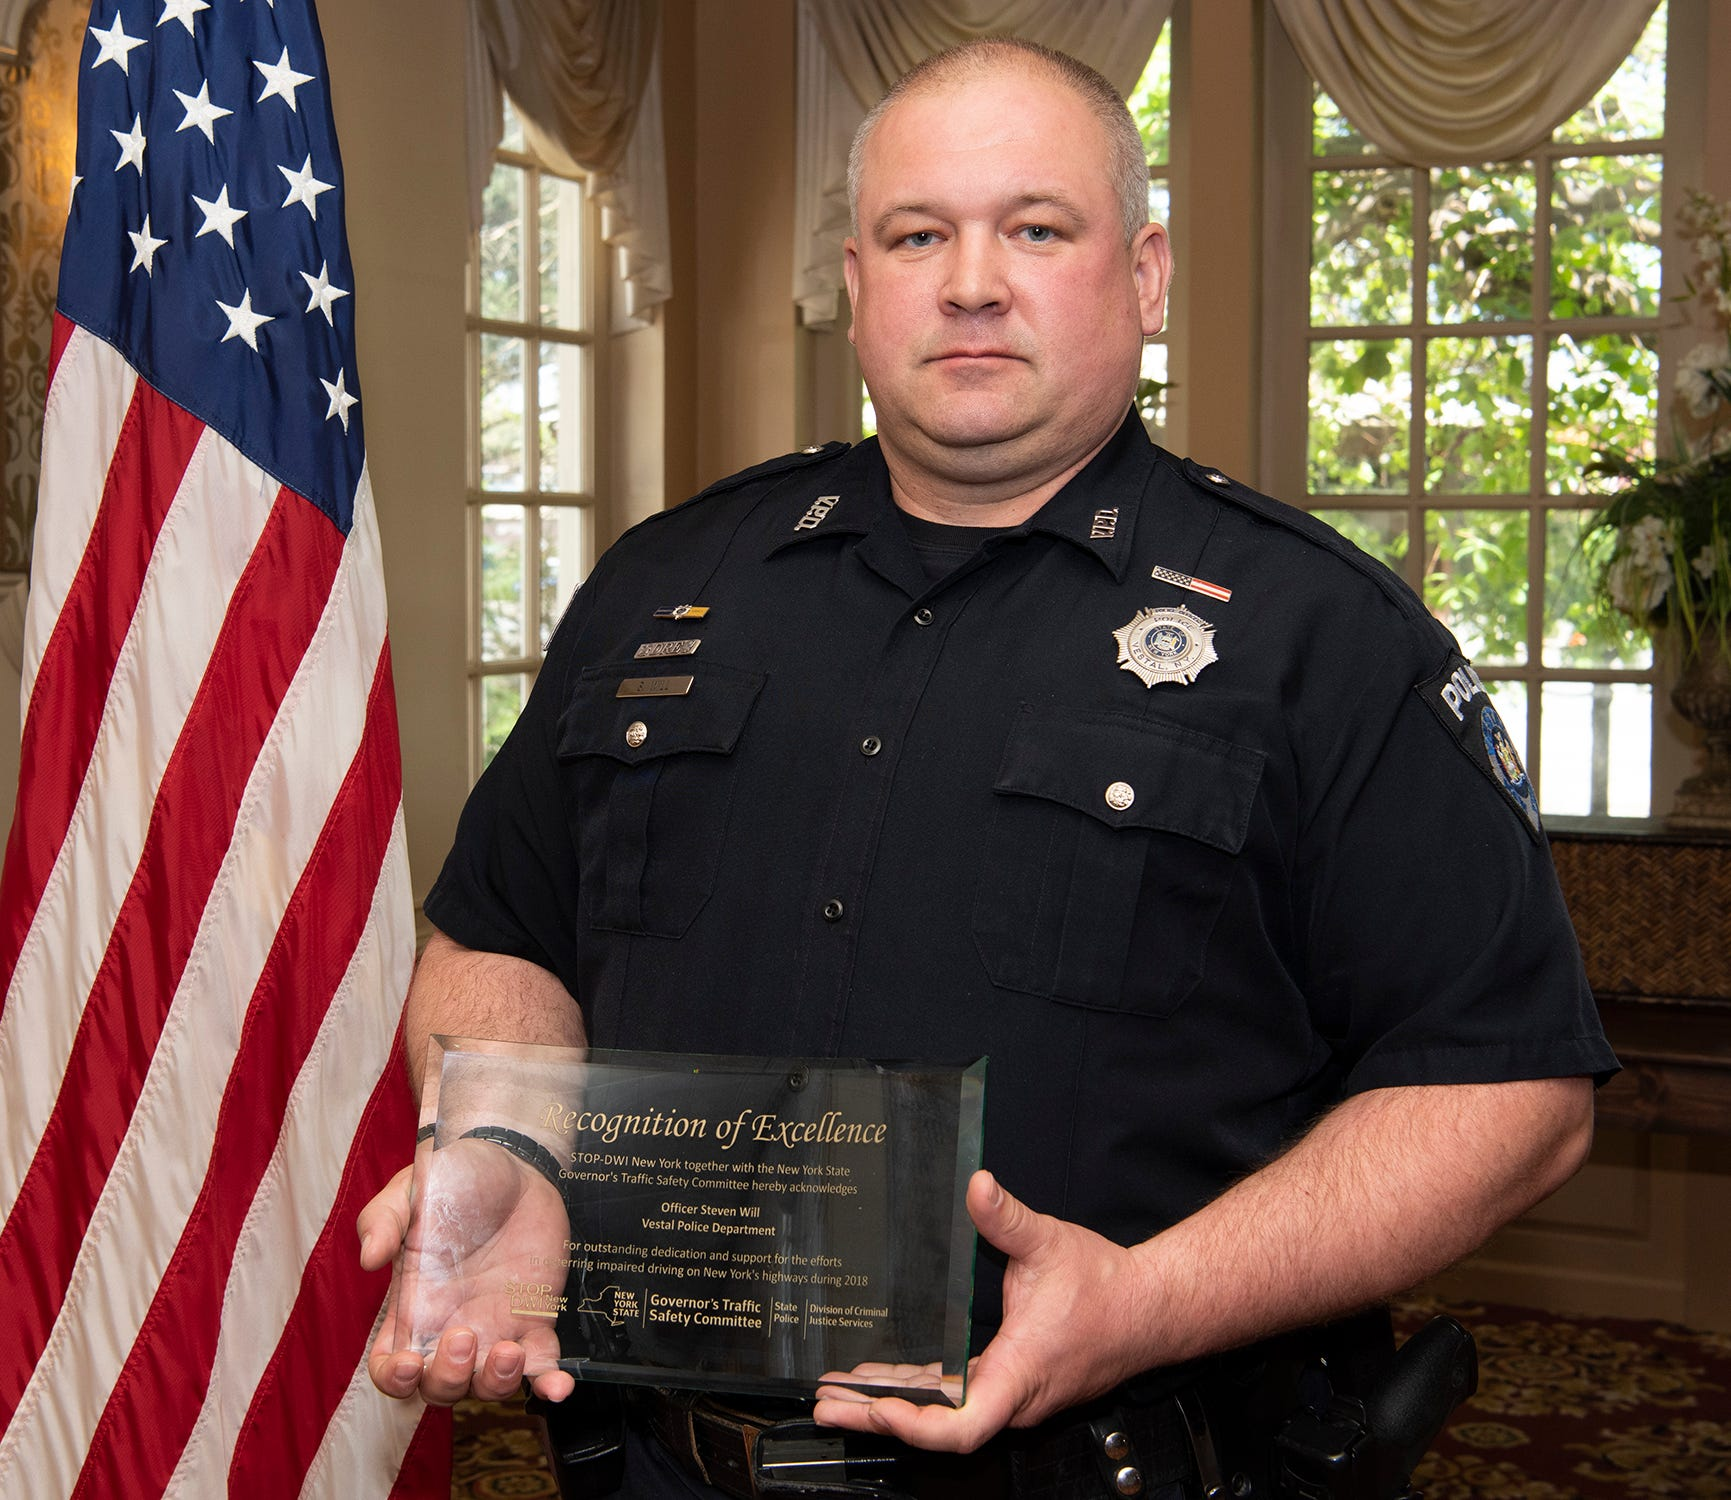 Vestal Police Officer Steve Will received the Recognition of Excellence Award from New York Stop DWI and New York State Governor's Traffic Safety Committee on May 8, 2019.